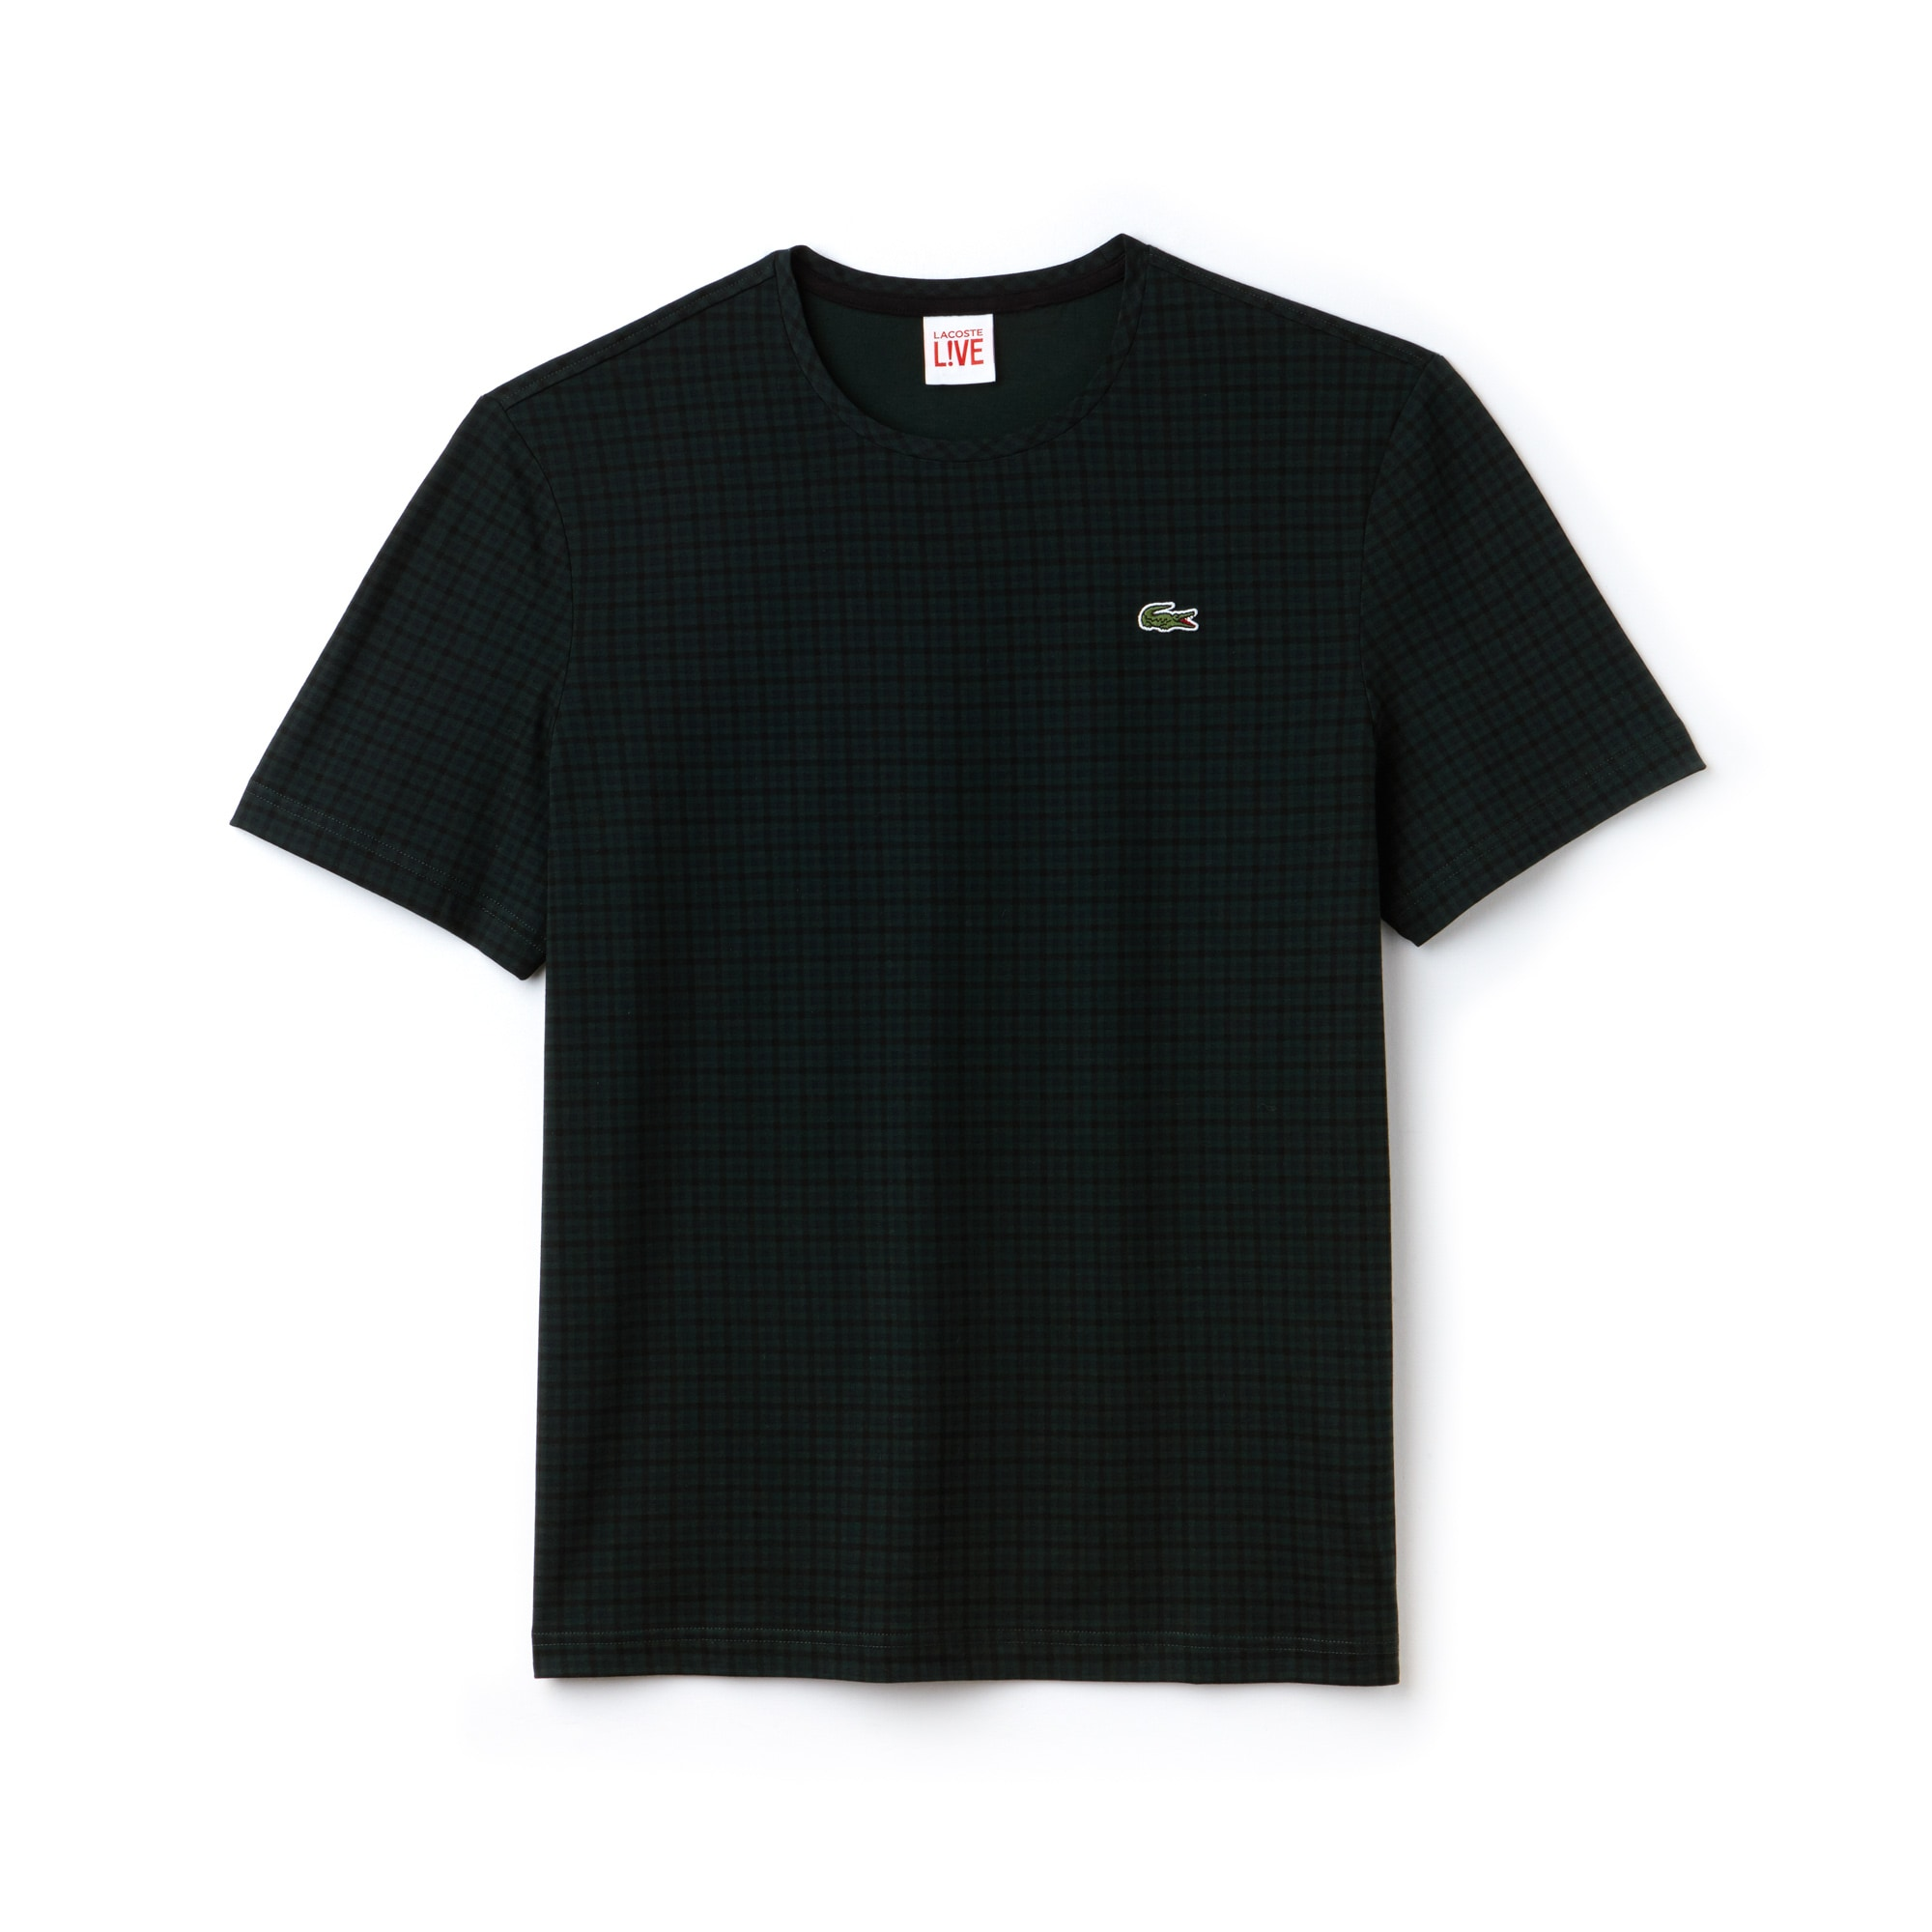 Men's Lacoste LIVE Crew Neck Check Cotton Jersey T-shirt